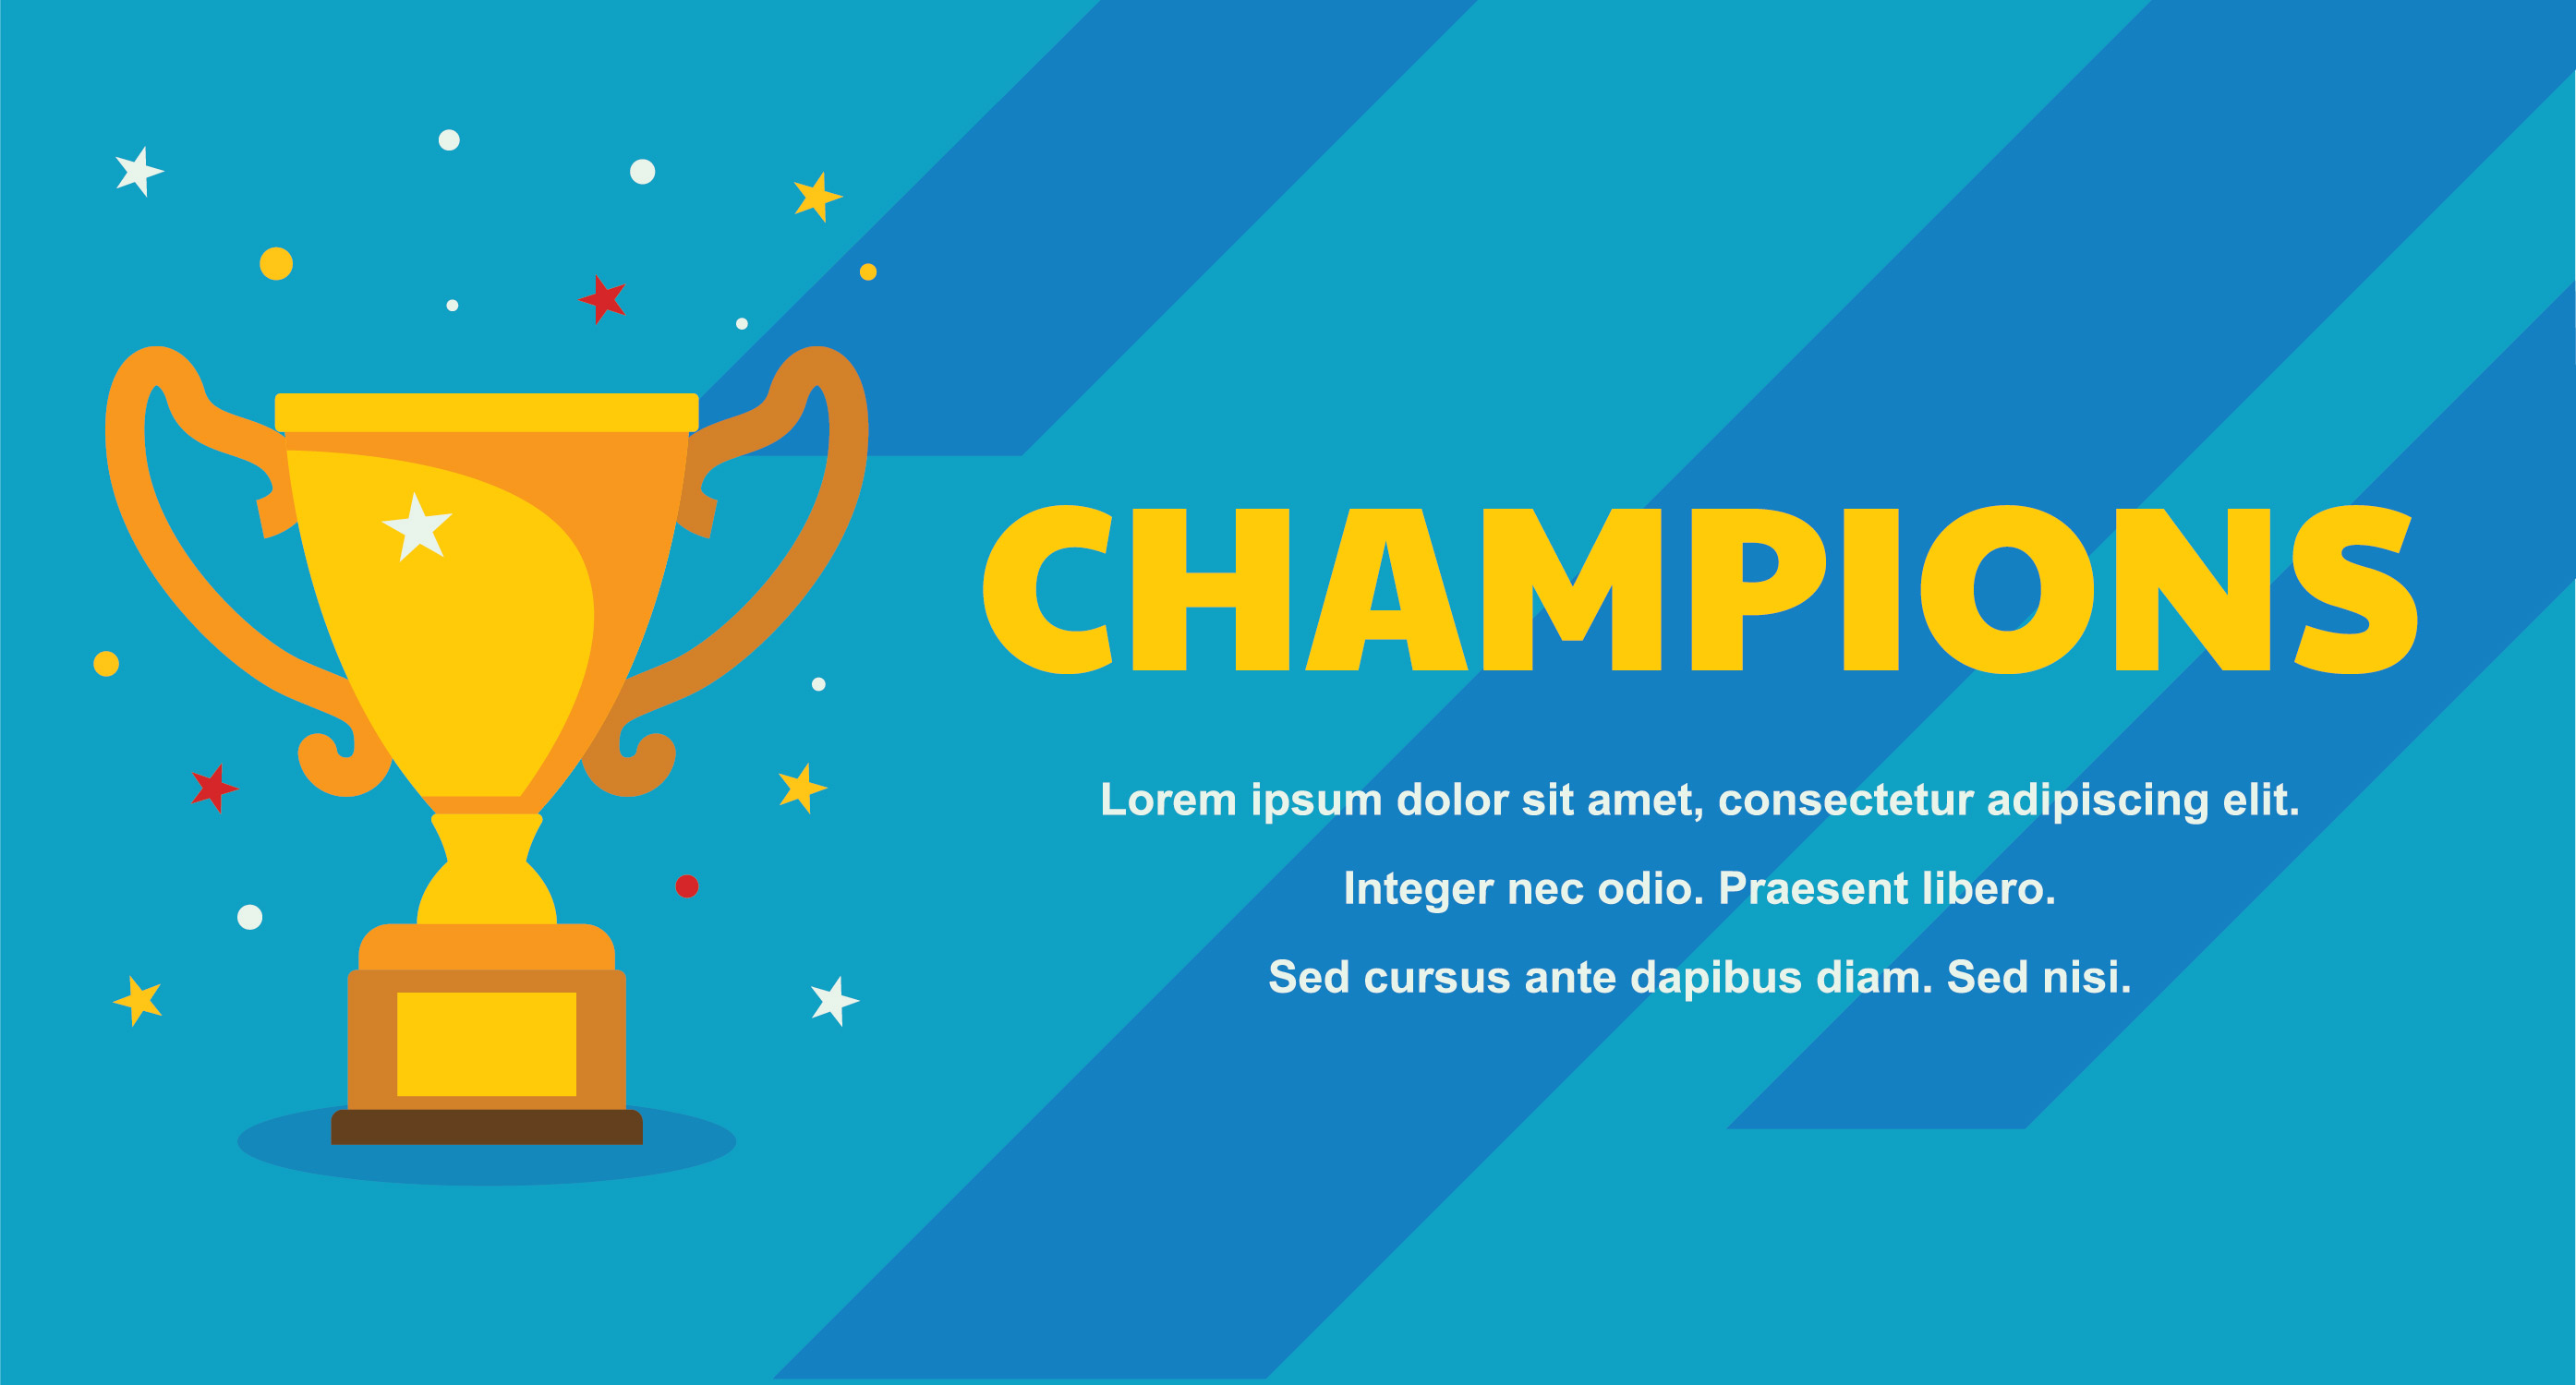 Champions Image: Champions Banner Template